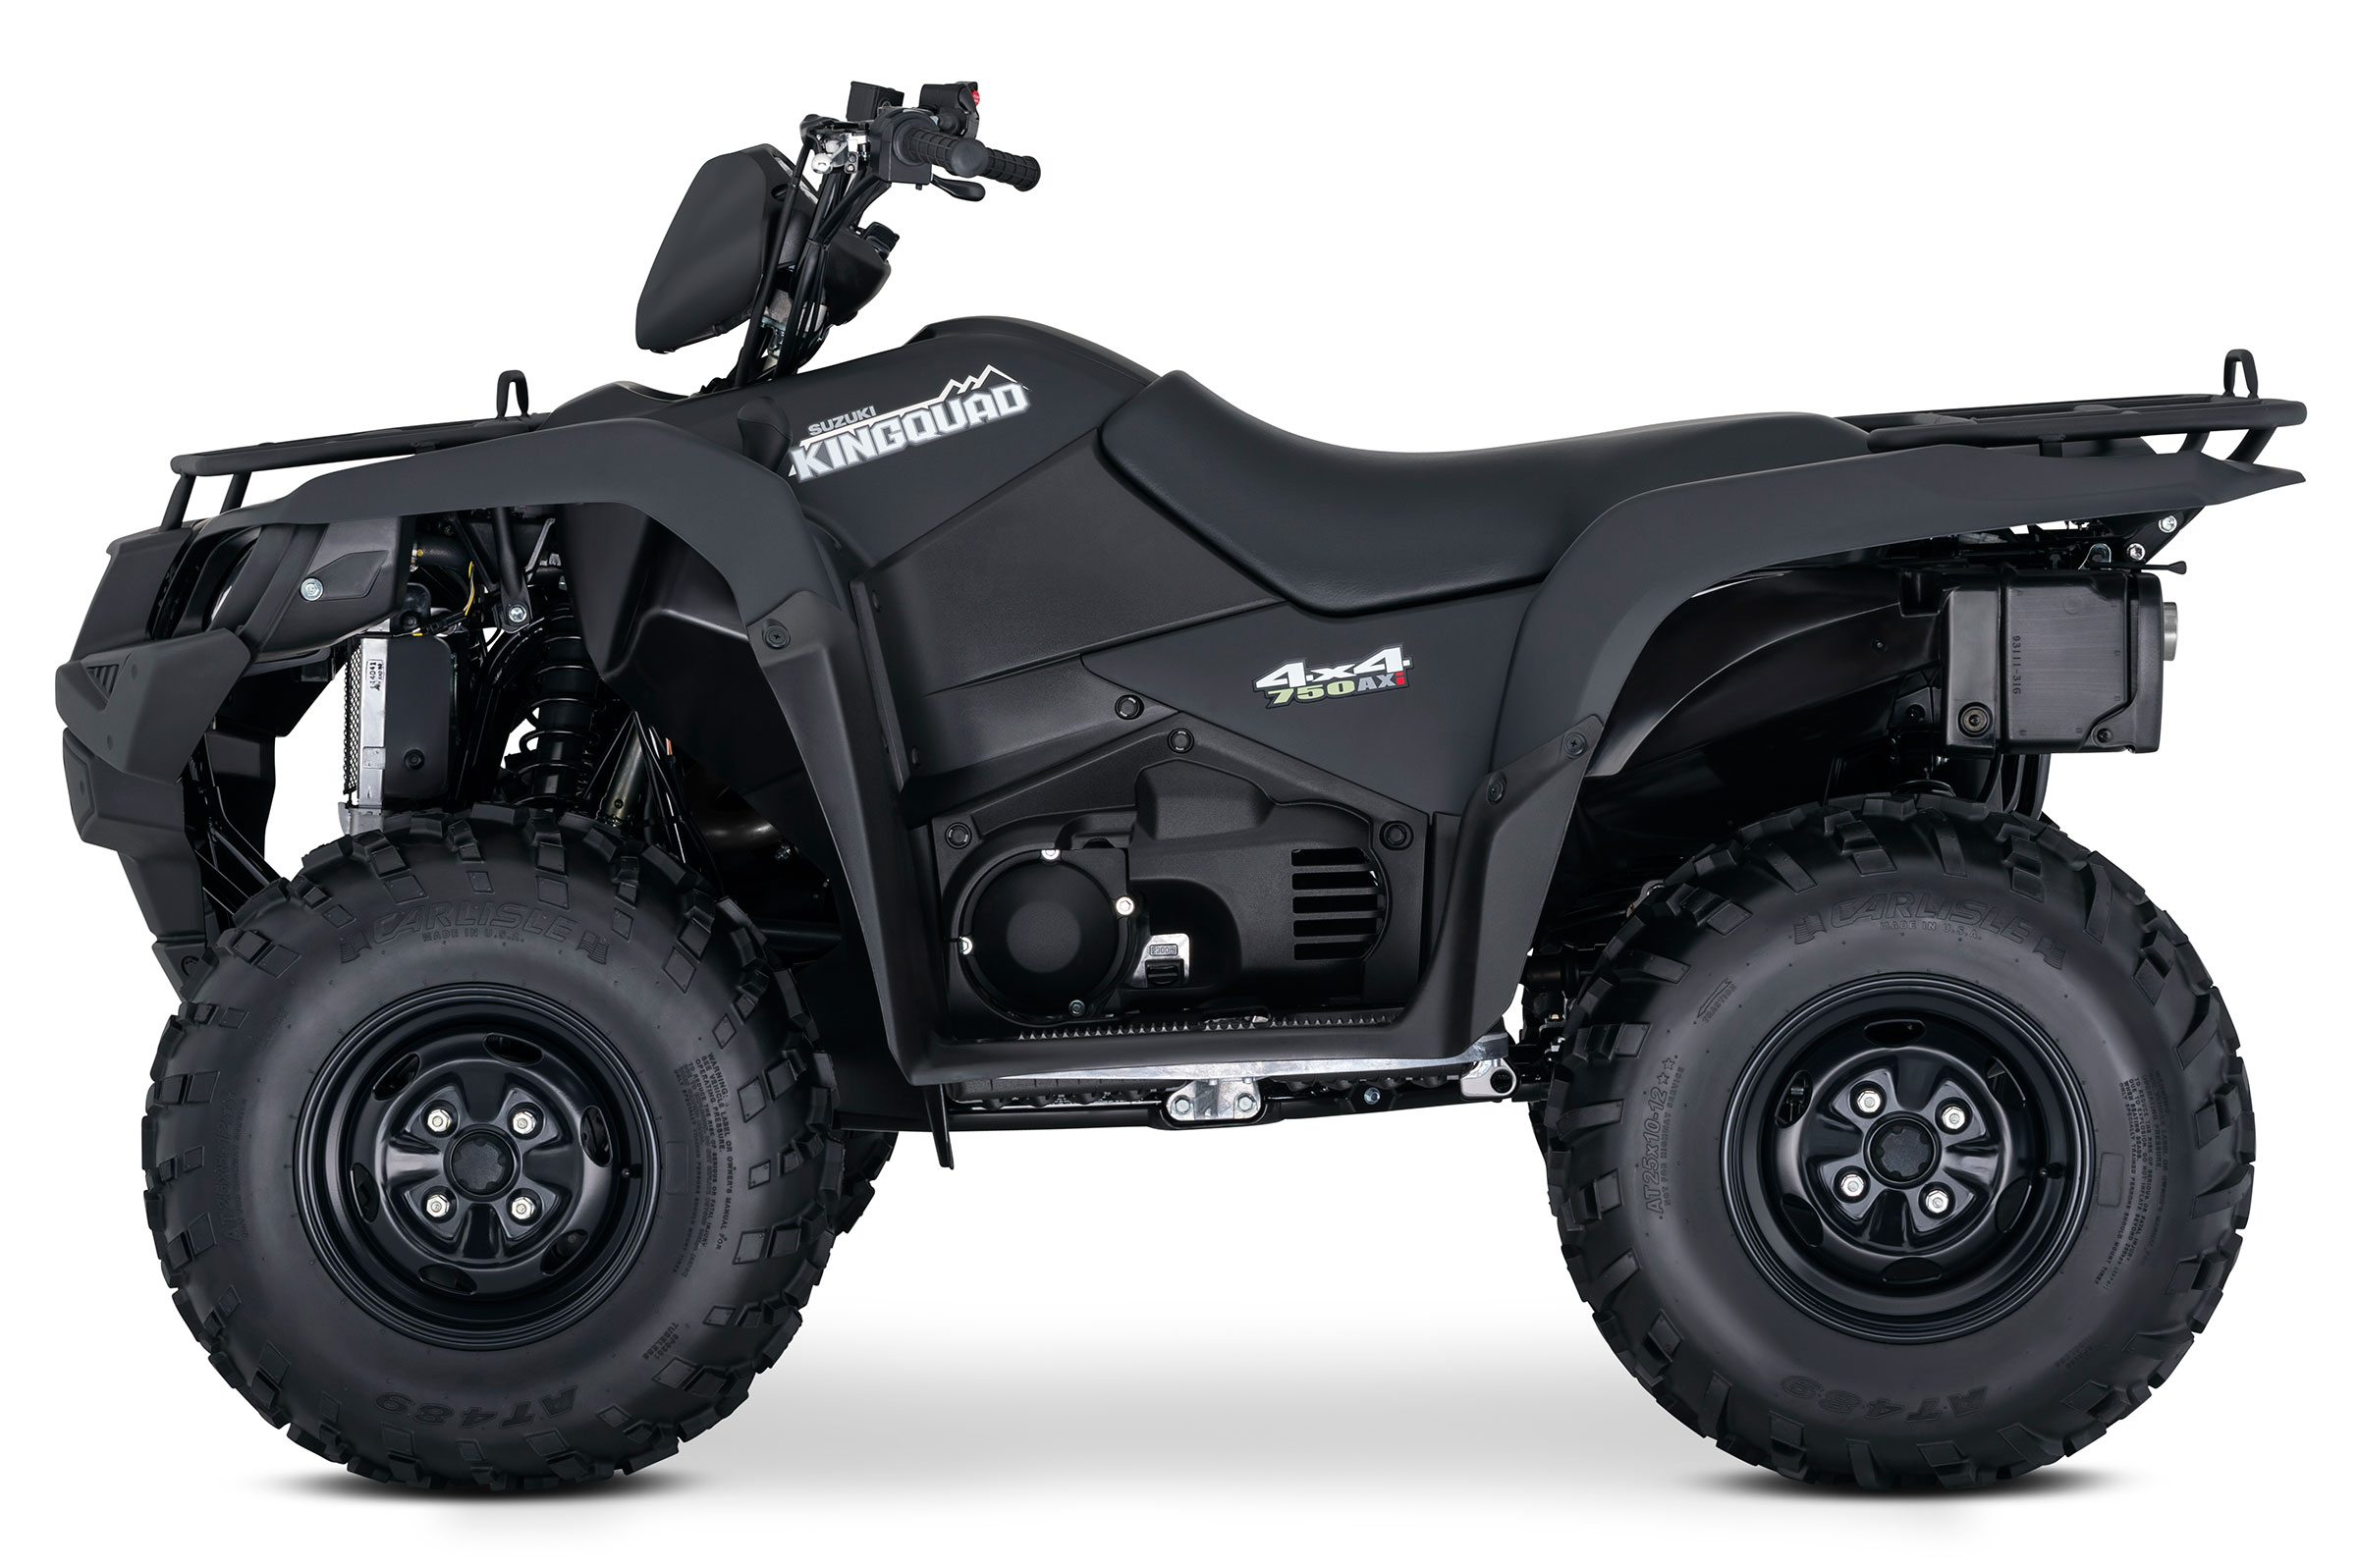 2018 Suzuki KingQuad 750AXi Power Steering Special Edition in Fayetteville, Georgia - Photo 2